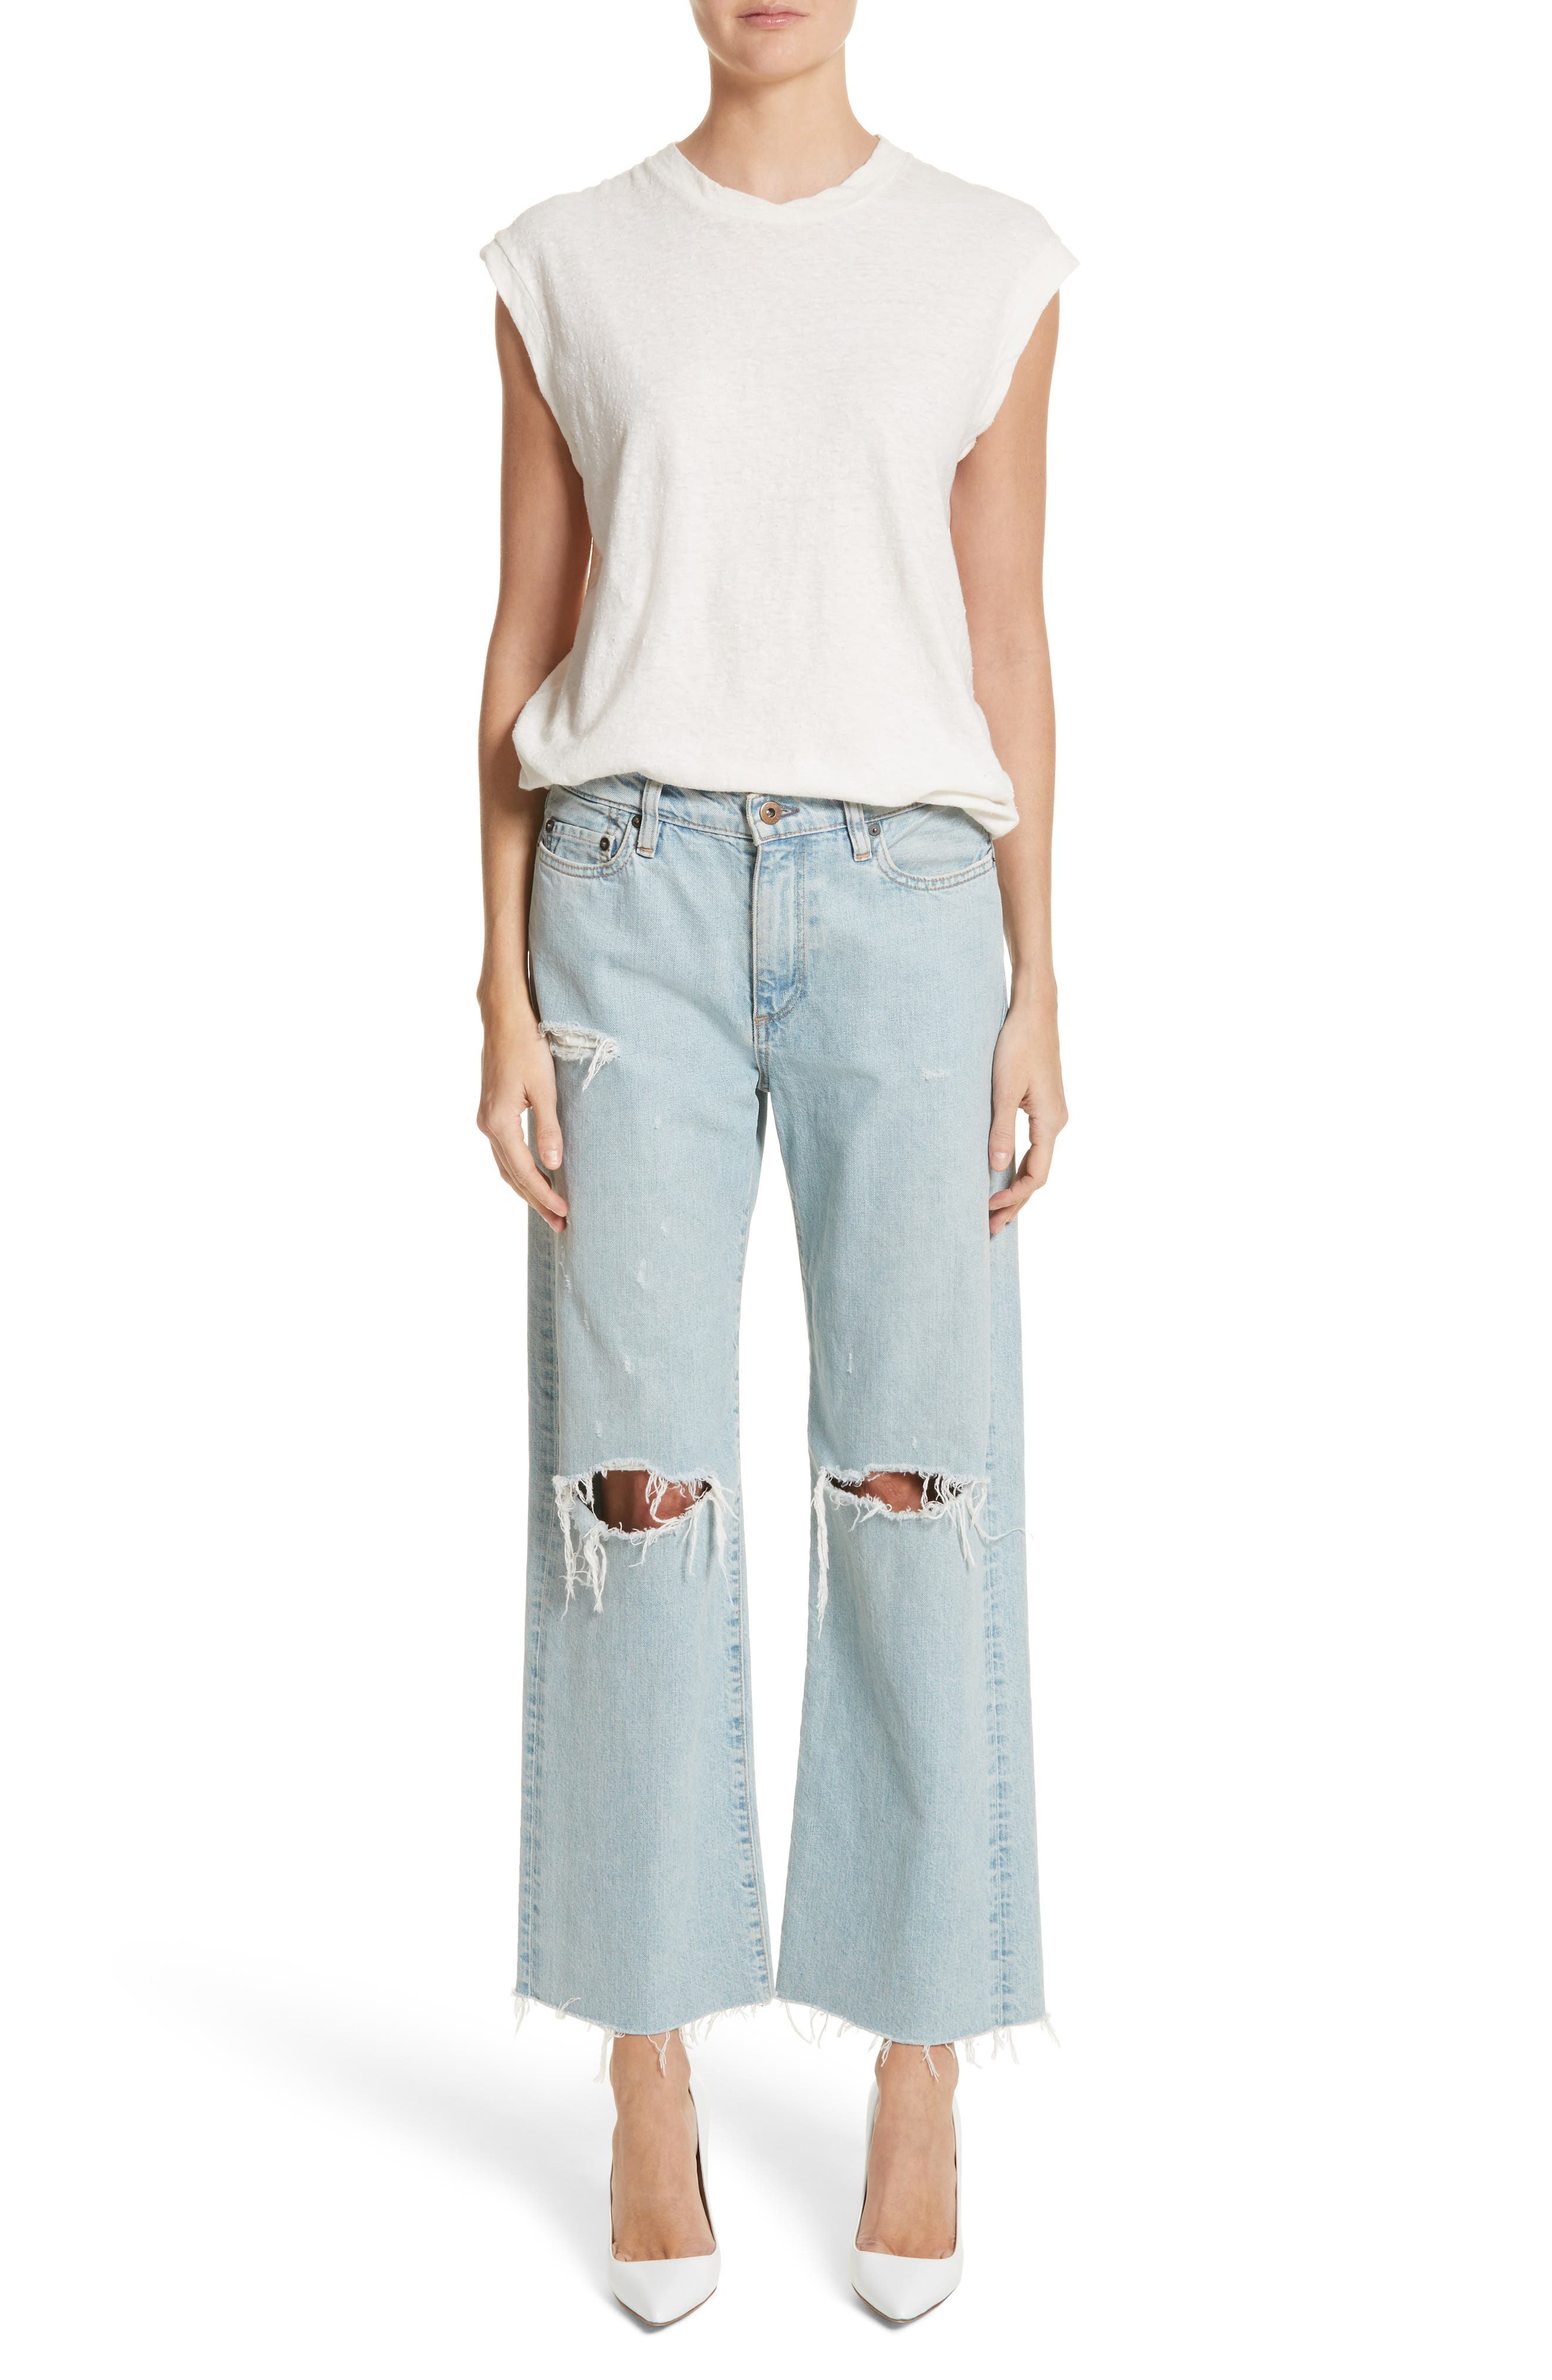 Tibbee Ripped Jeans,                             Alternate thumbnail 7, color,                             400